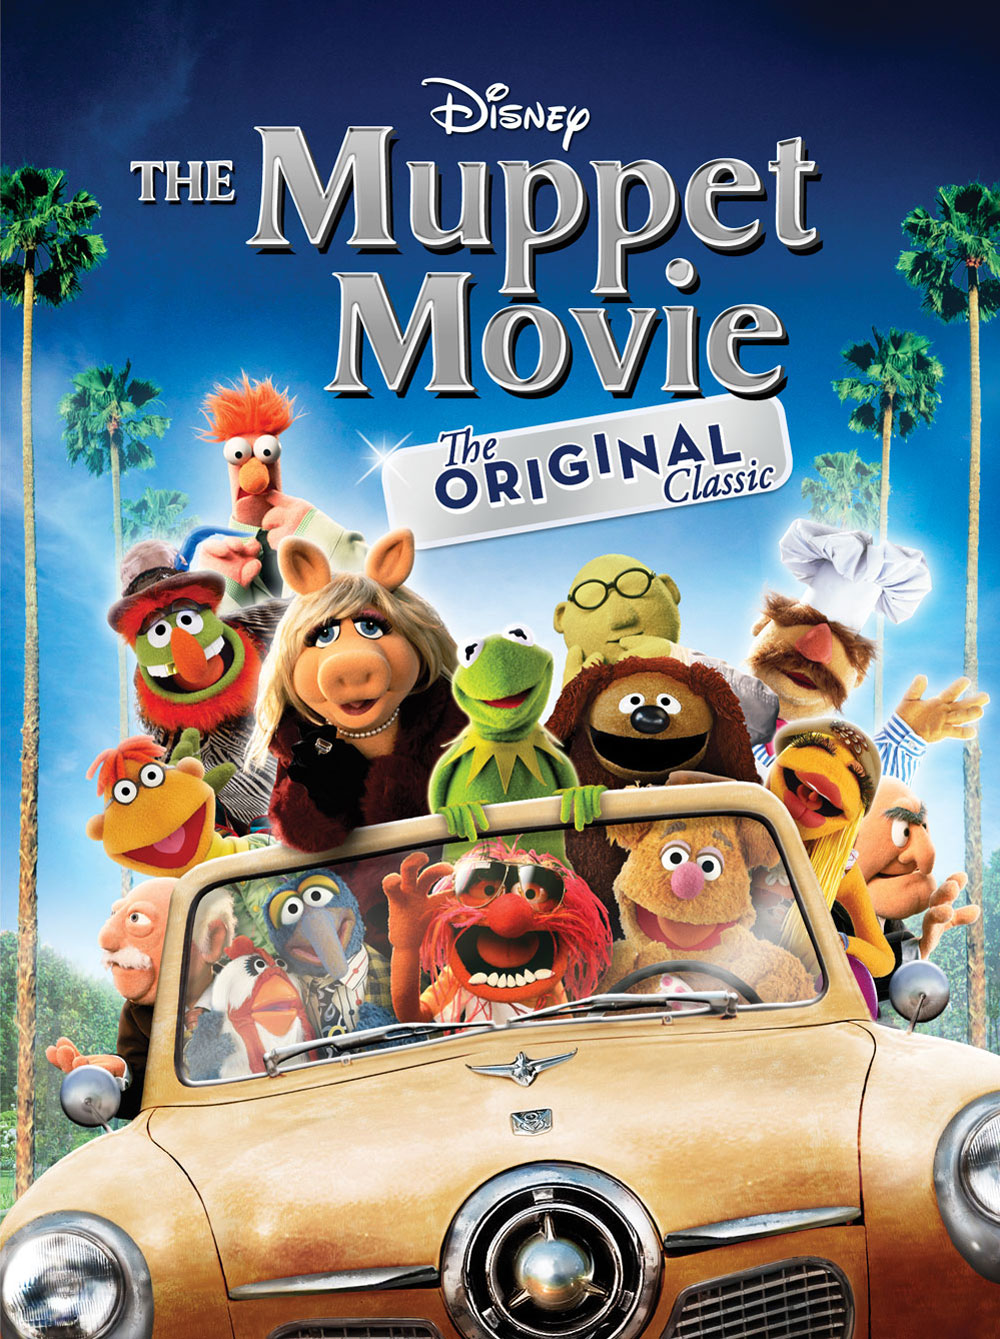 The-Muppet-Movie-Blu-ray-cover.jpg